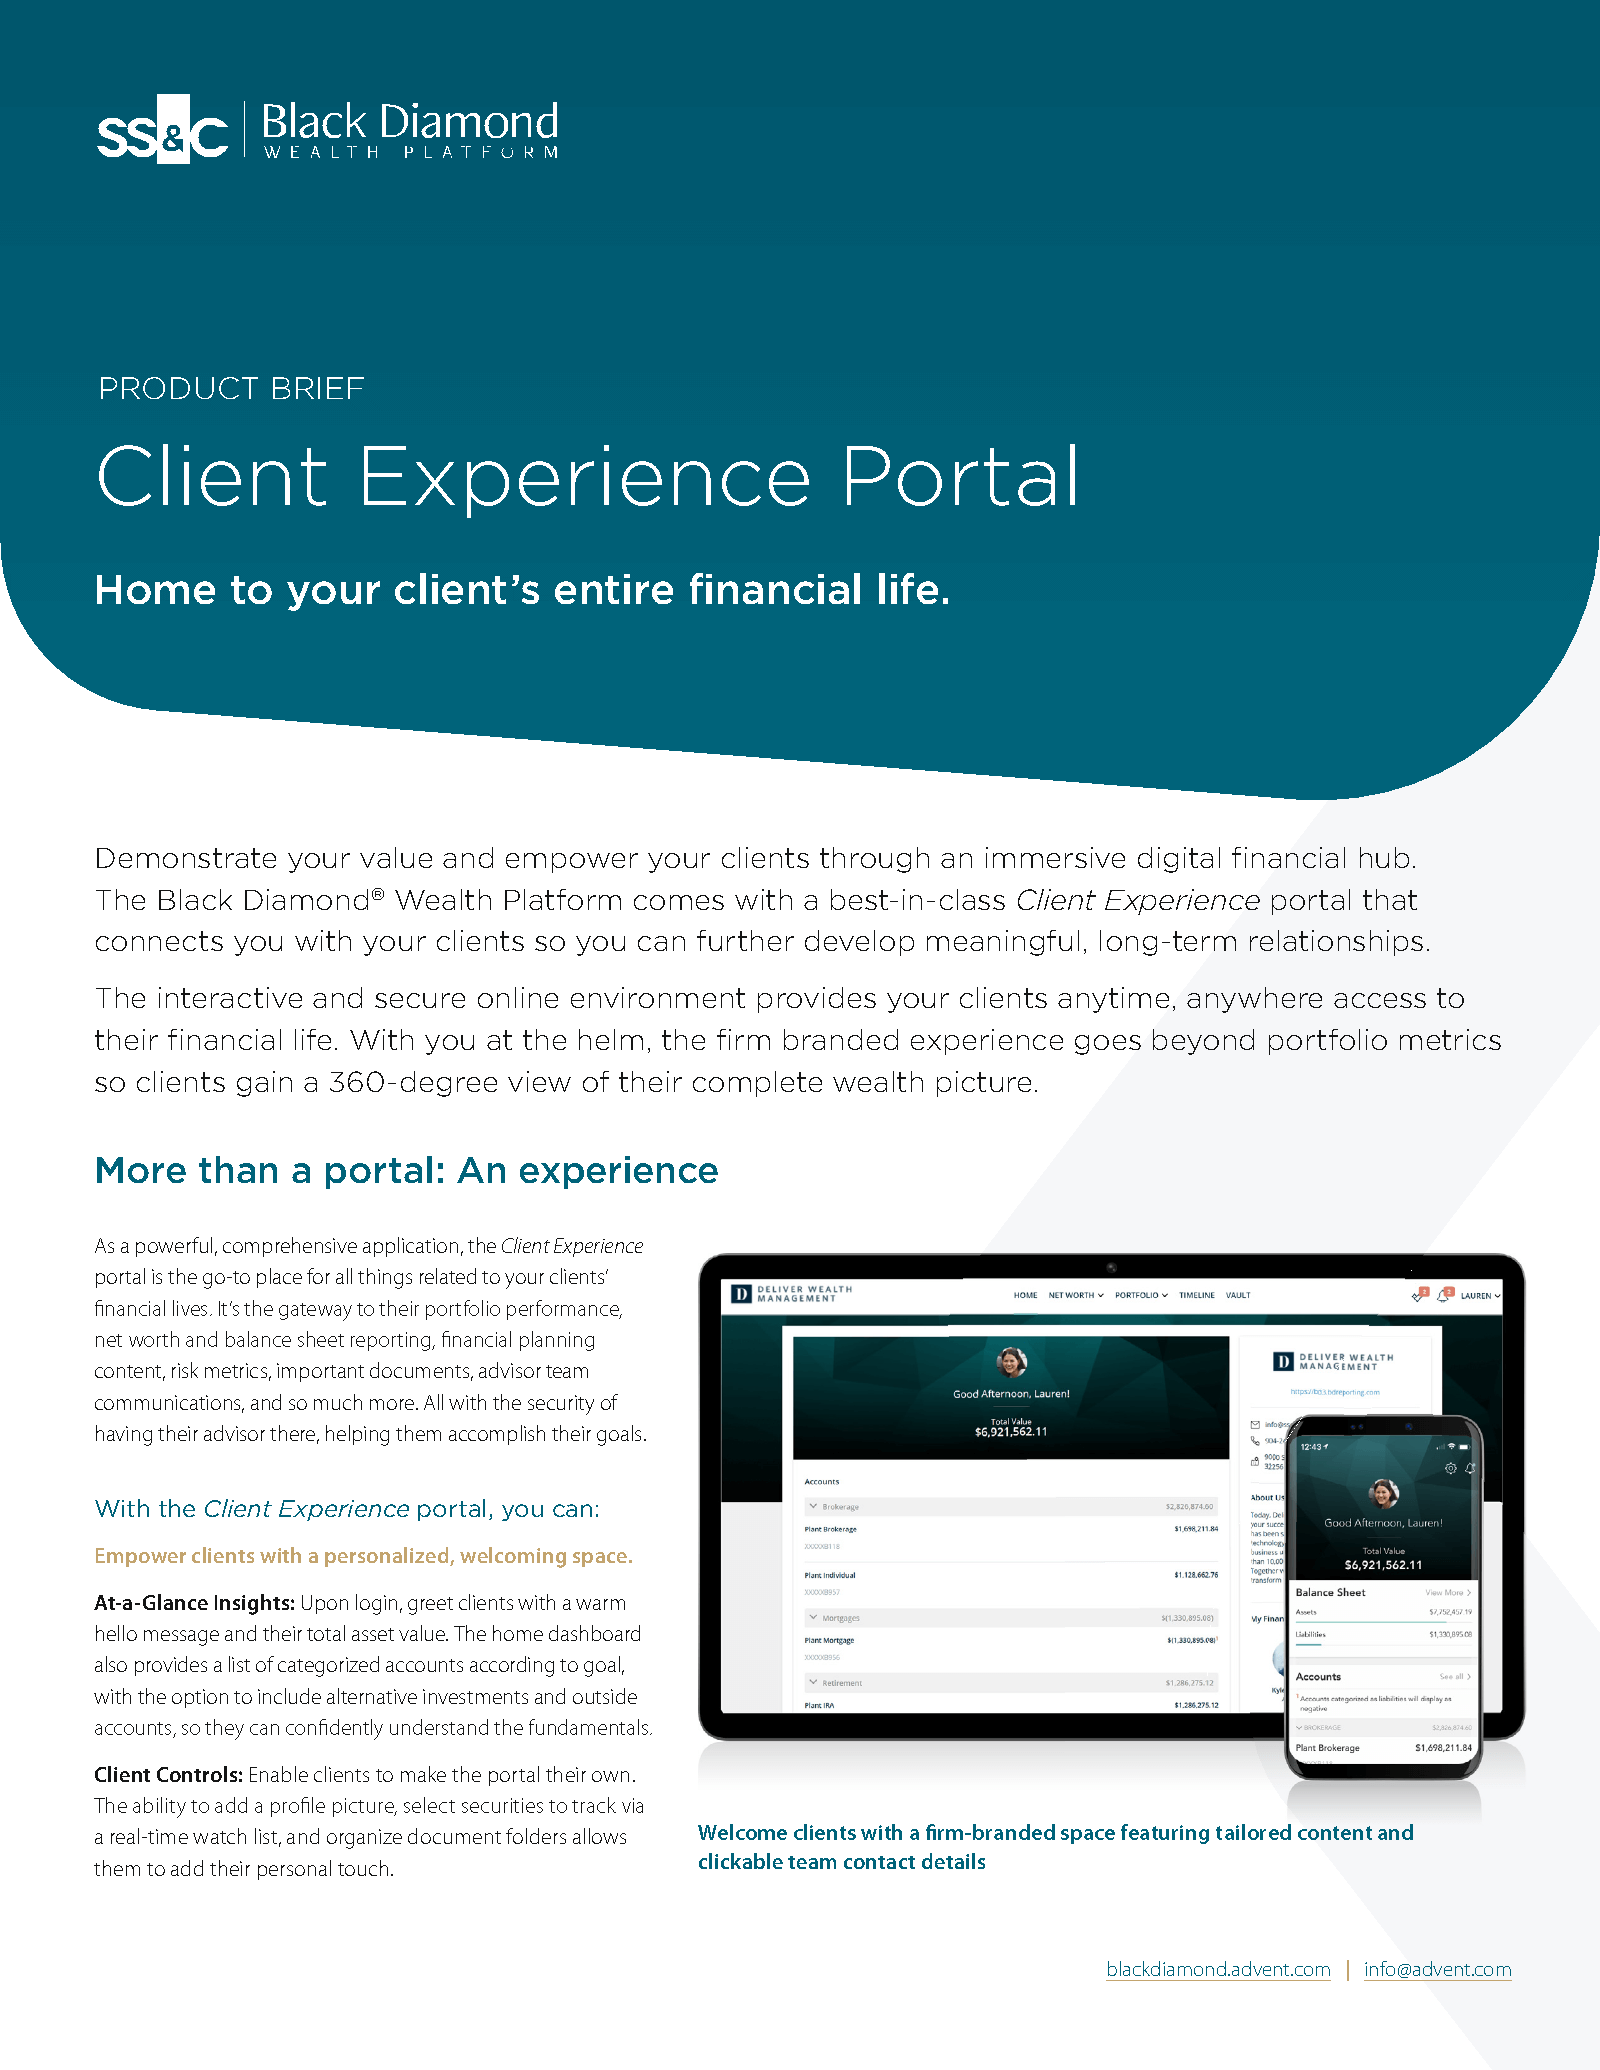 Client Experience Product Brief